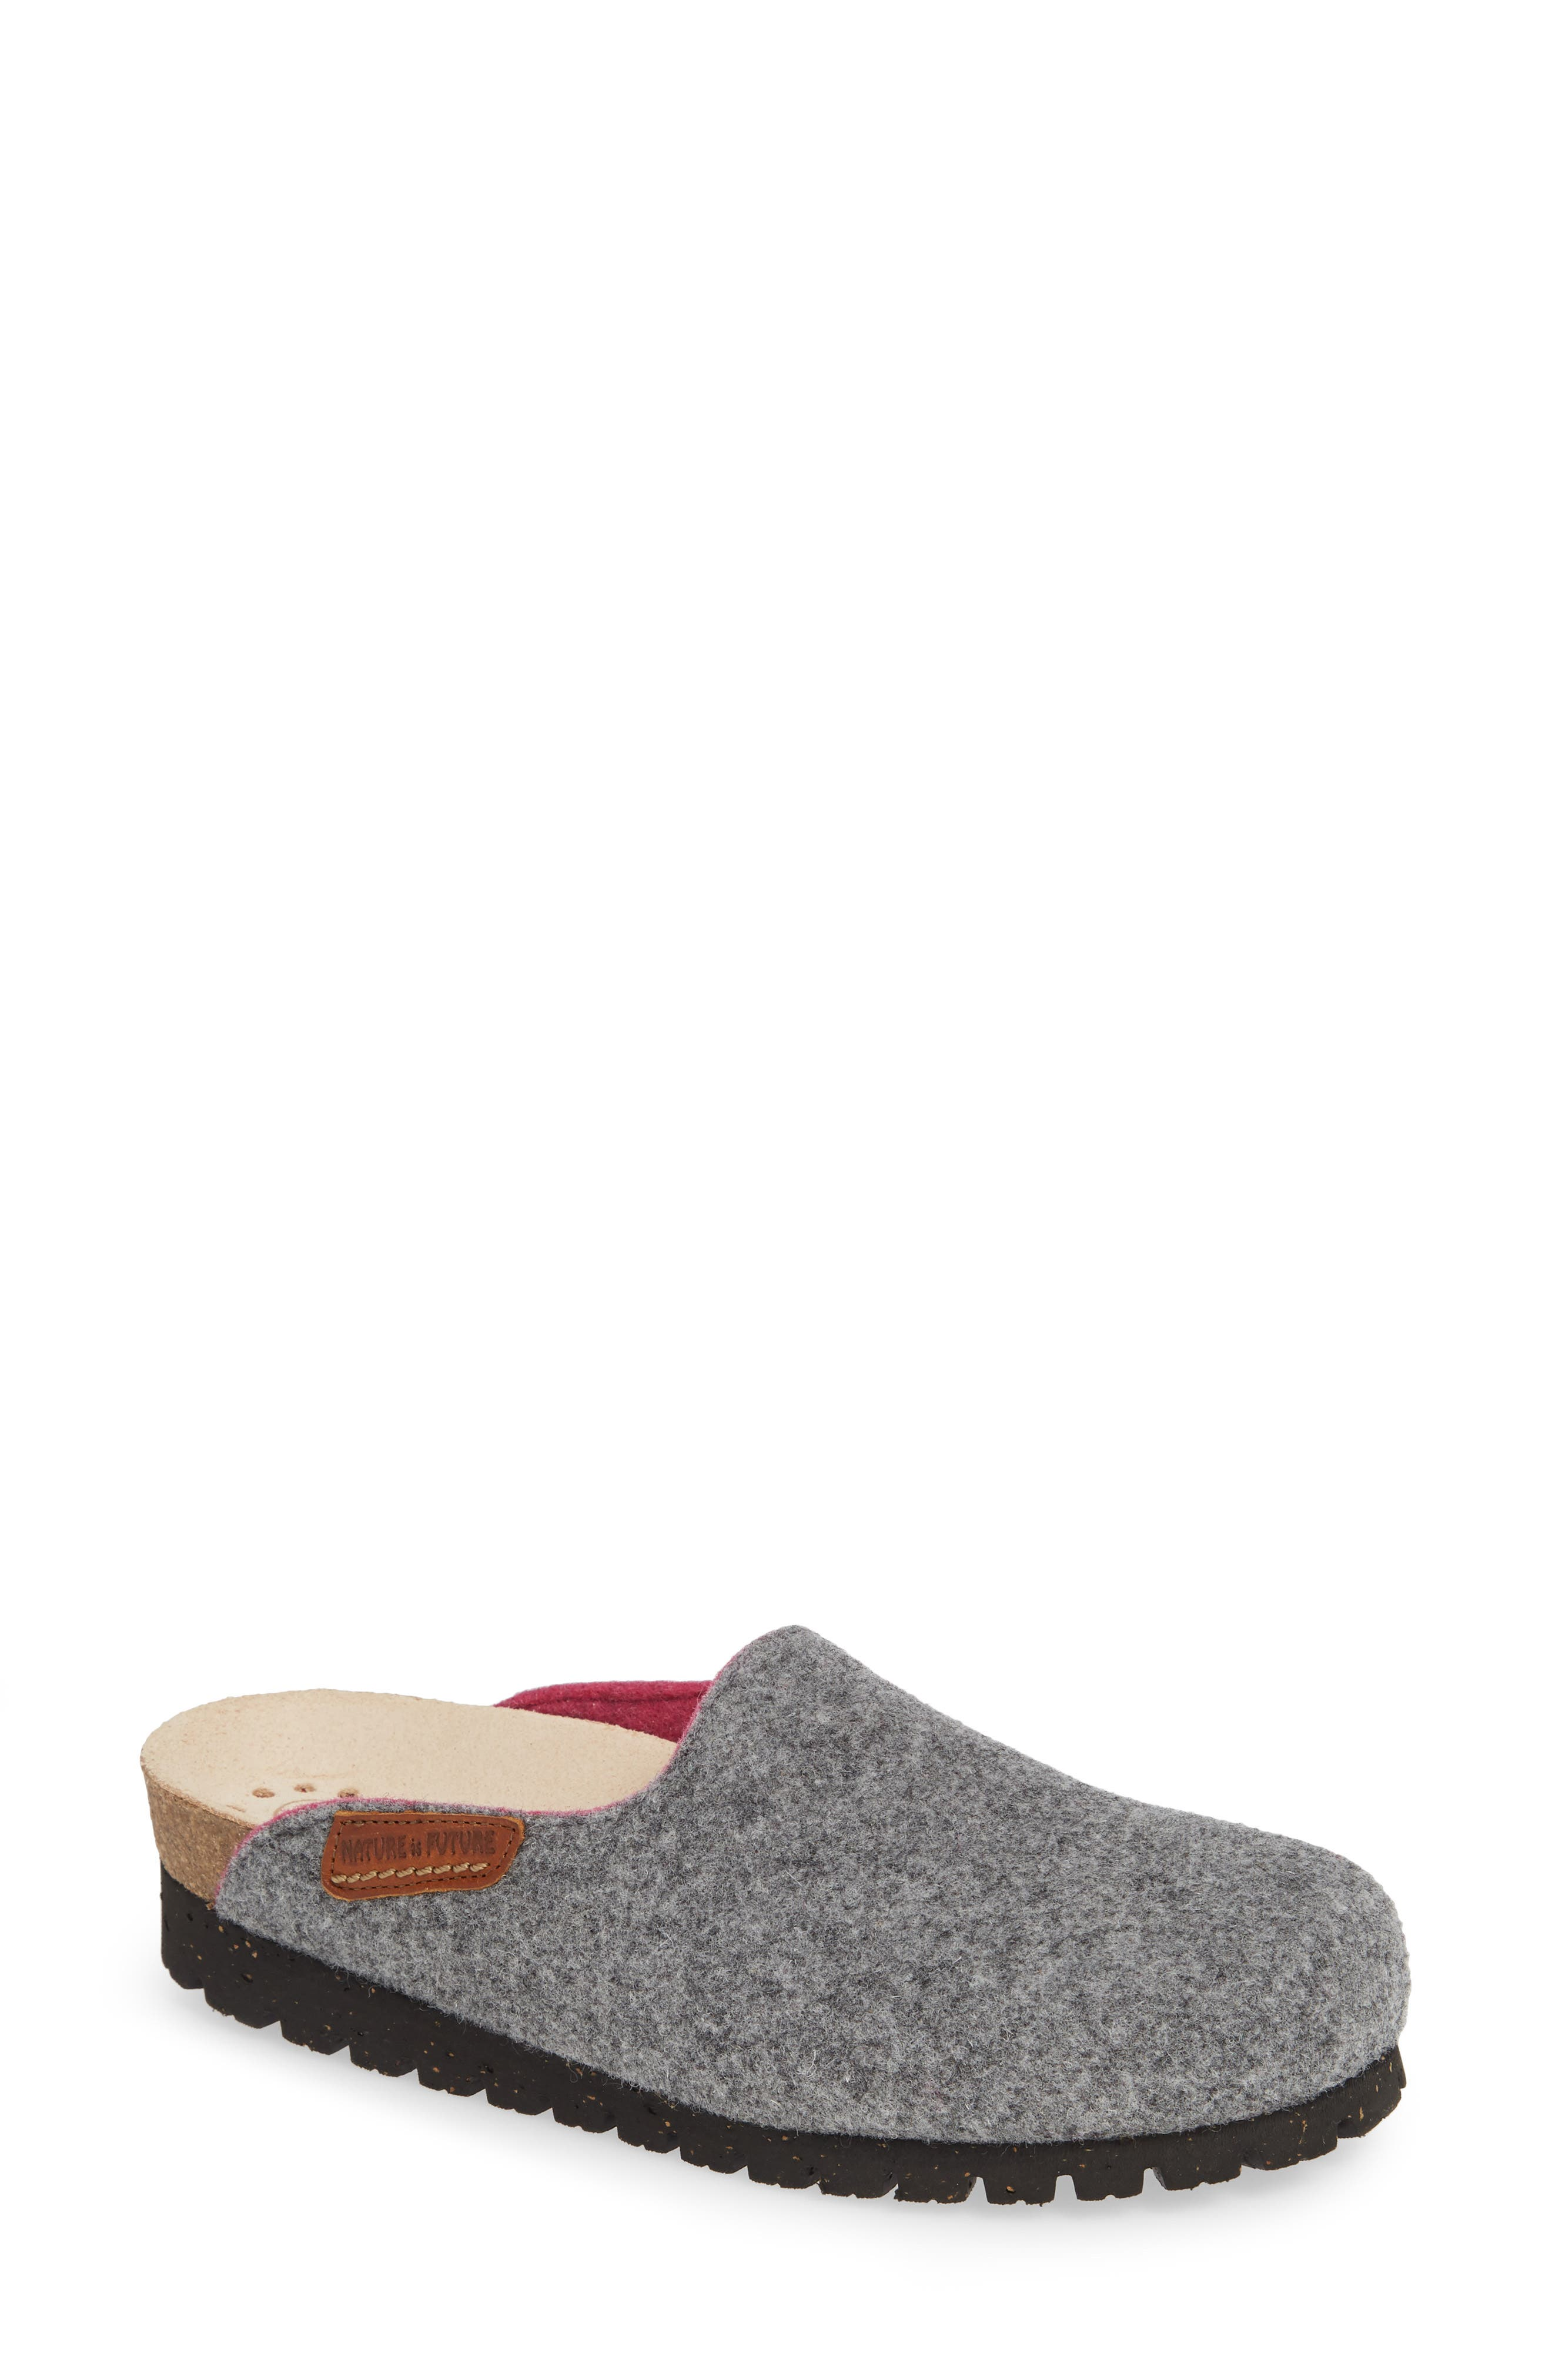 MEPHISTO Thea Boiled Wool Clog, Main, color, GREY FABRIC